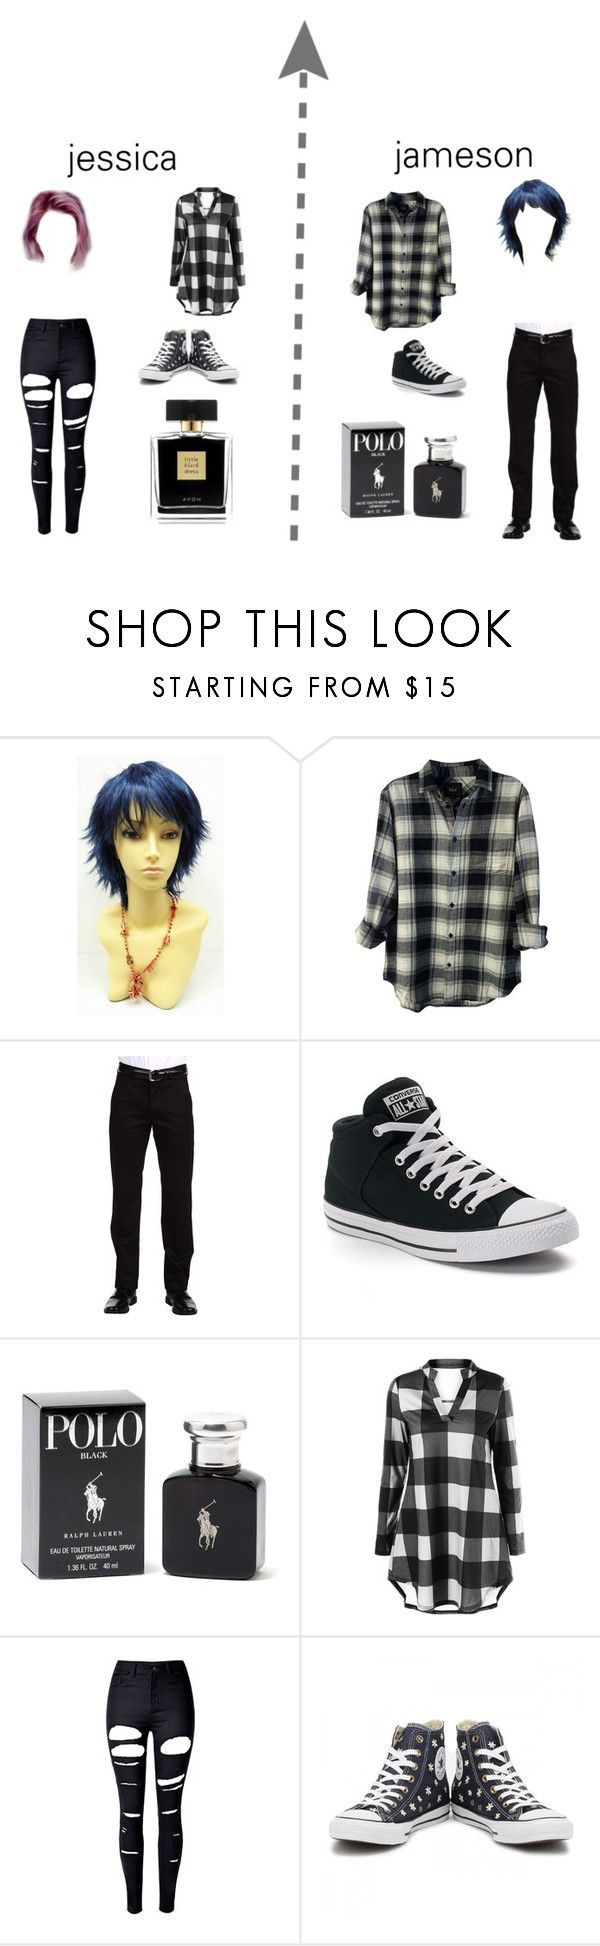 """Modern-day Jessie+James from Pokemon"" by izzymaster ❤ liked on Polyvore featuring Rails, Dockers, Converse, Azzaro, WithChic, Avon and modern"